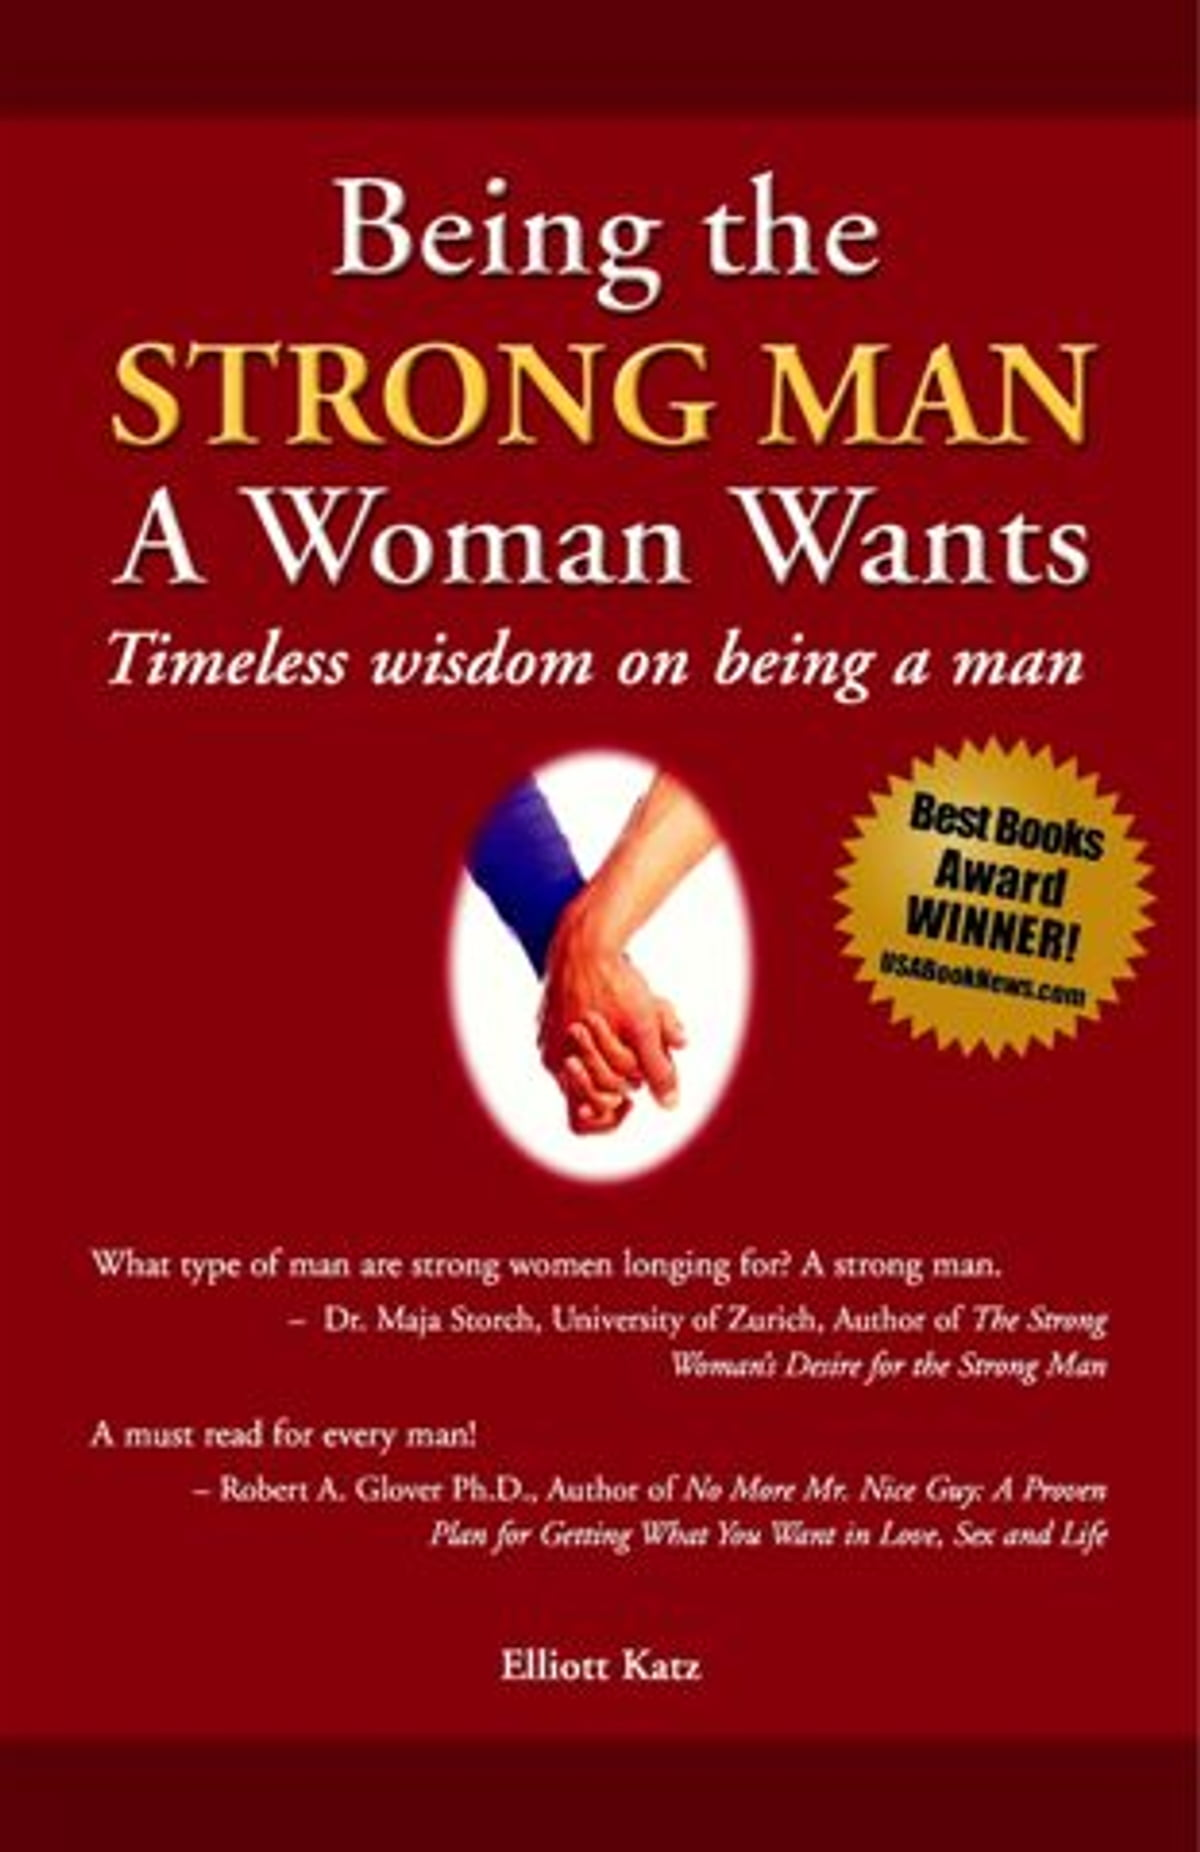 Watch Types of Men Every Woman Wants in Hindi video